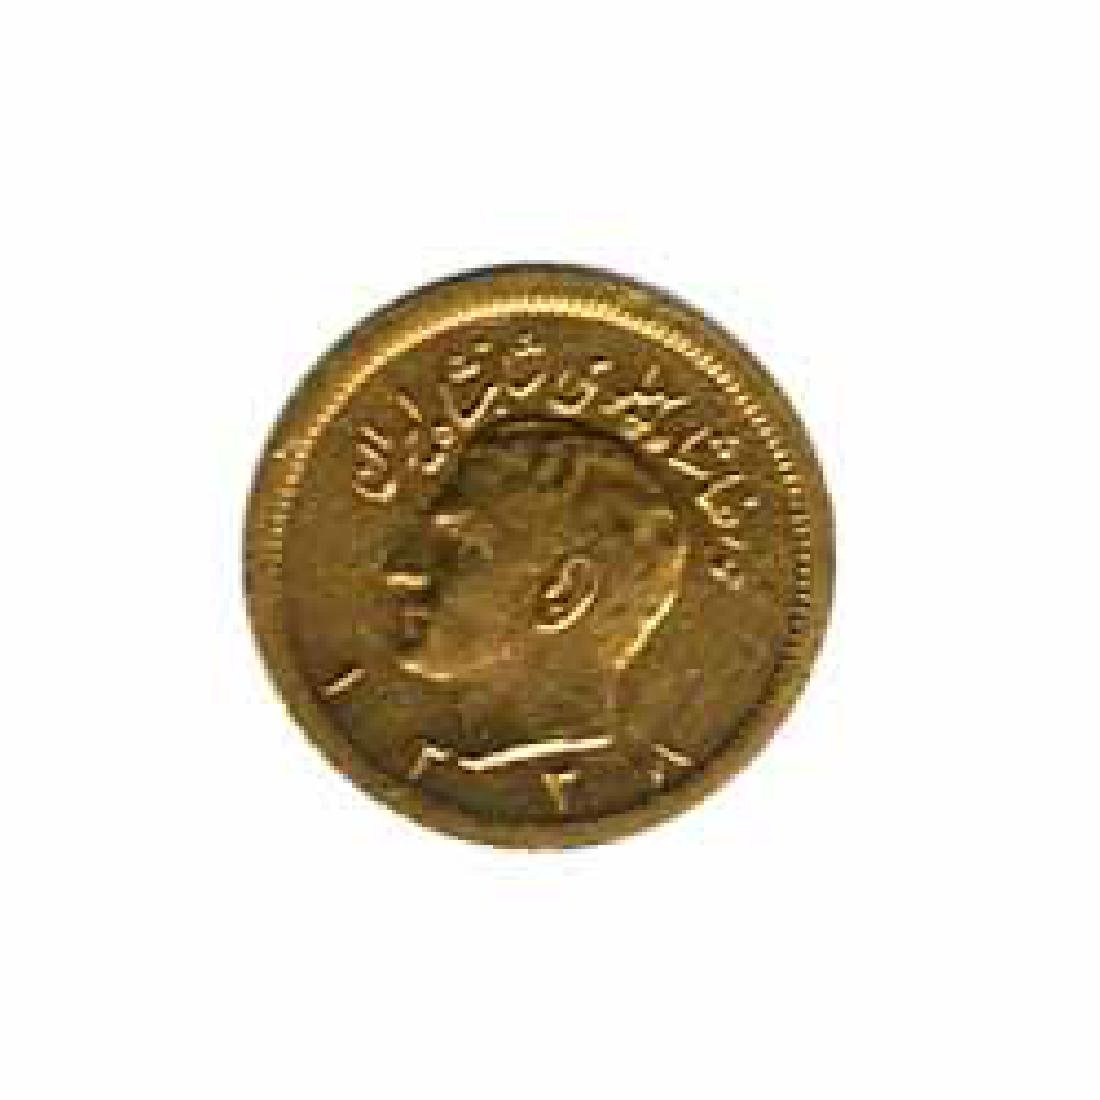 Iran Gold One Pahlave 0.2354 Ounce (dates our choice)